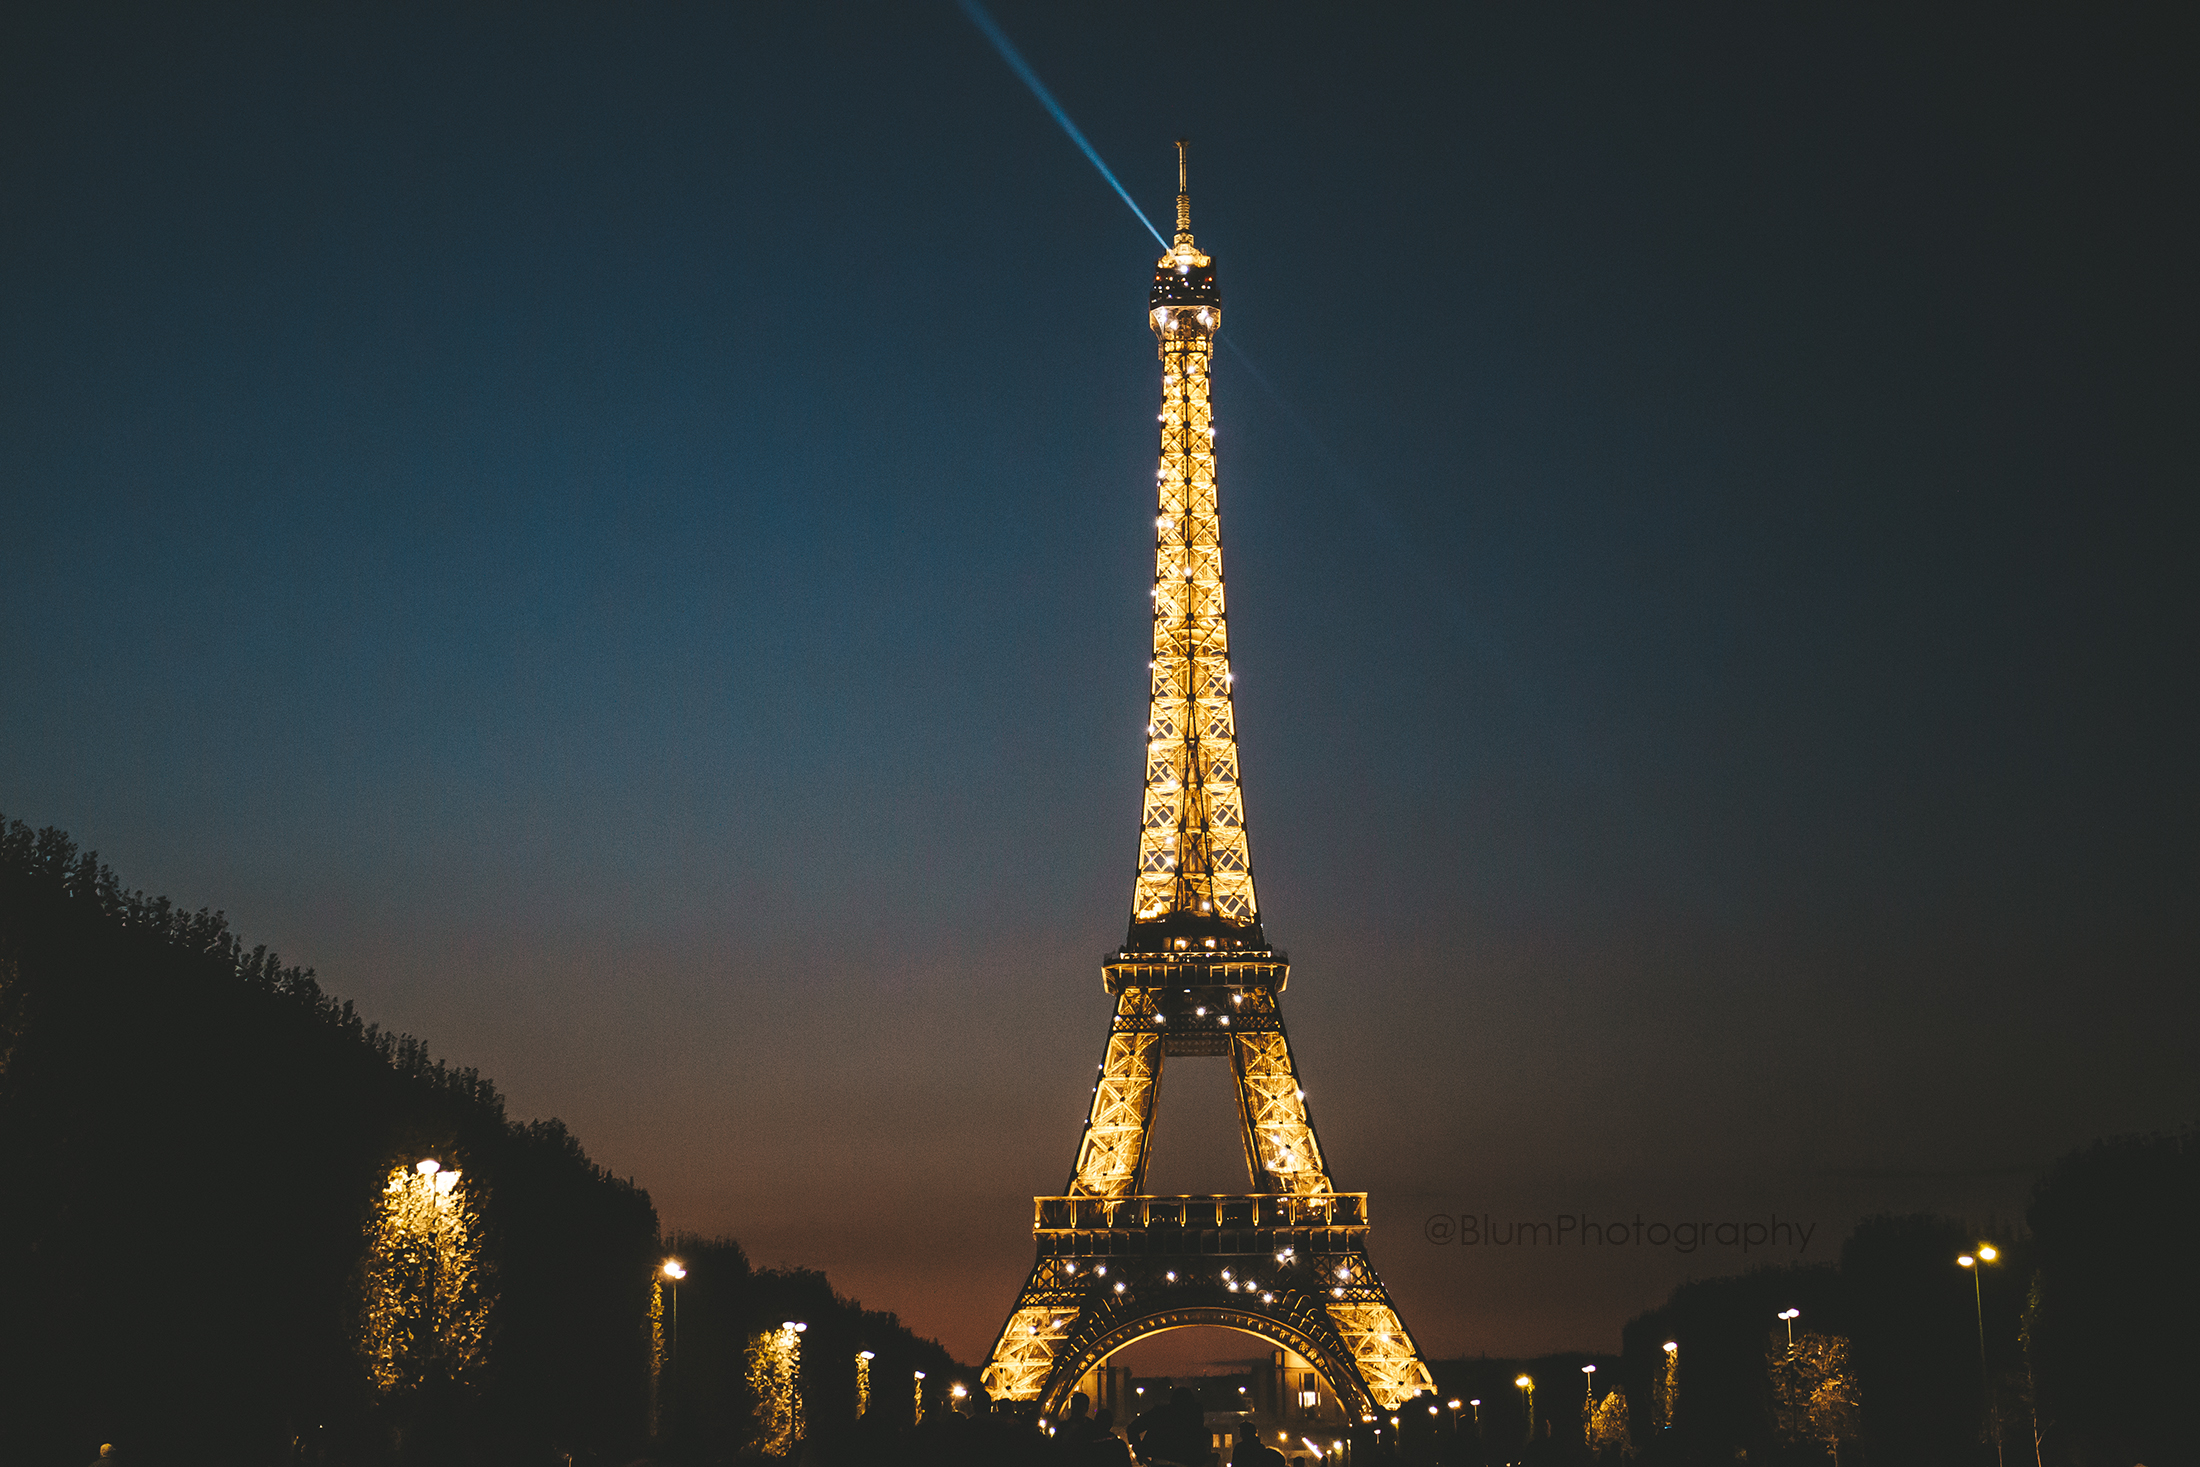 Matt blum travel photography paris france eiffel tower sunset